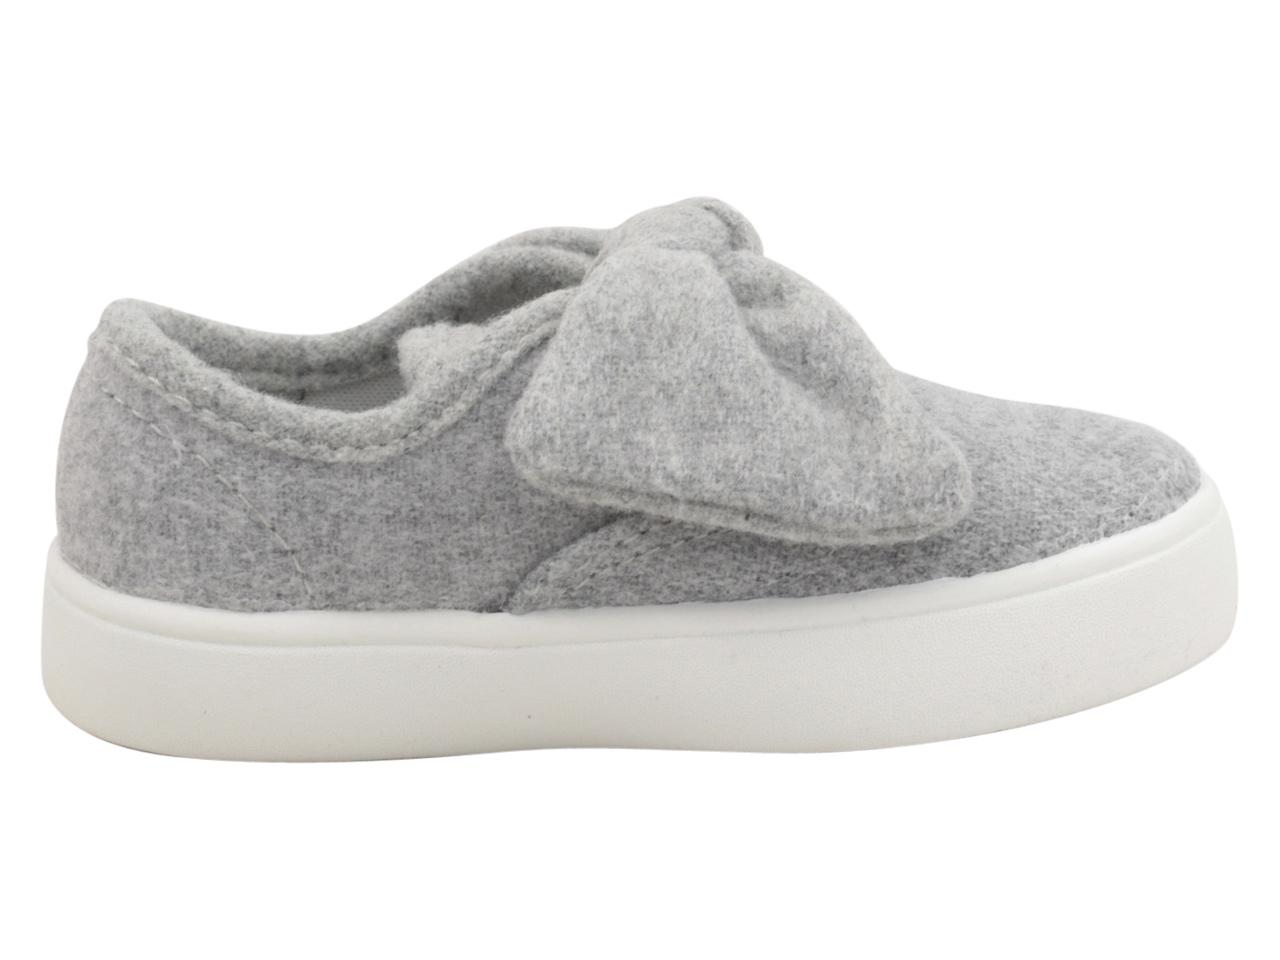 Carters Toddler Girls Azura Bow Sneakers